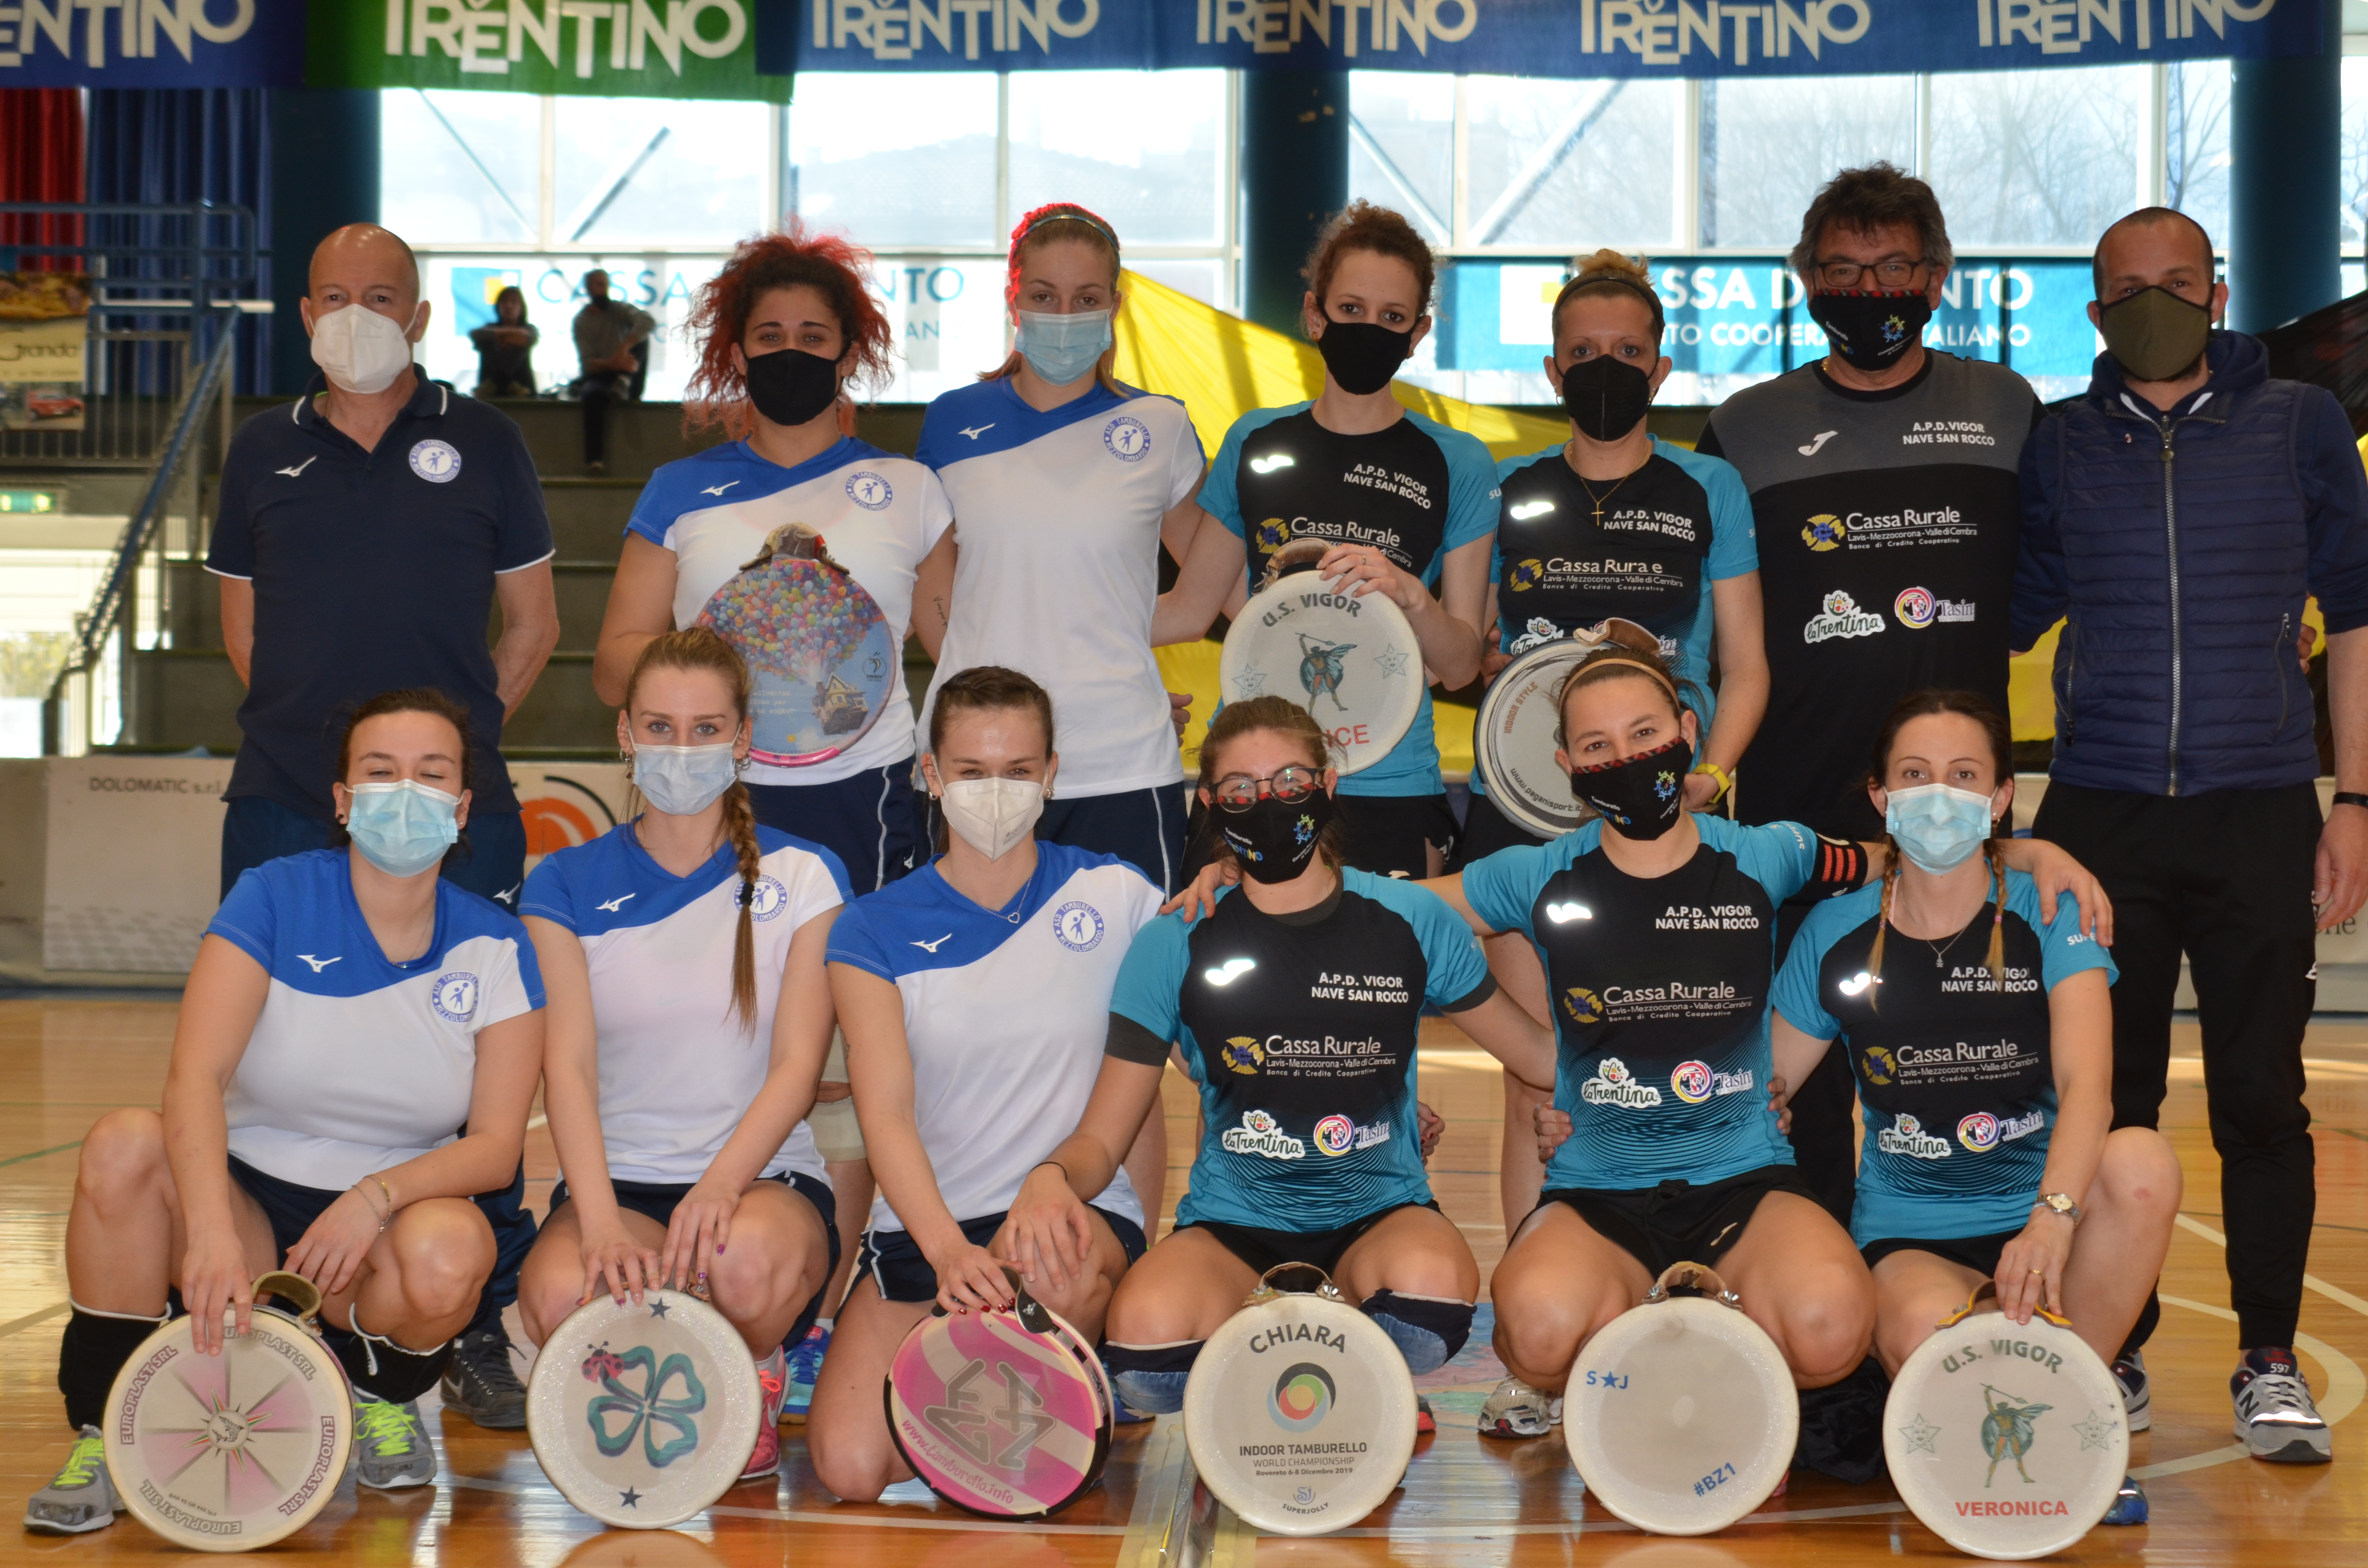 images/News_2021/Coppa_Italia/indoor/femminile/DSC_7957.JPG